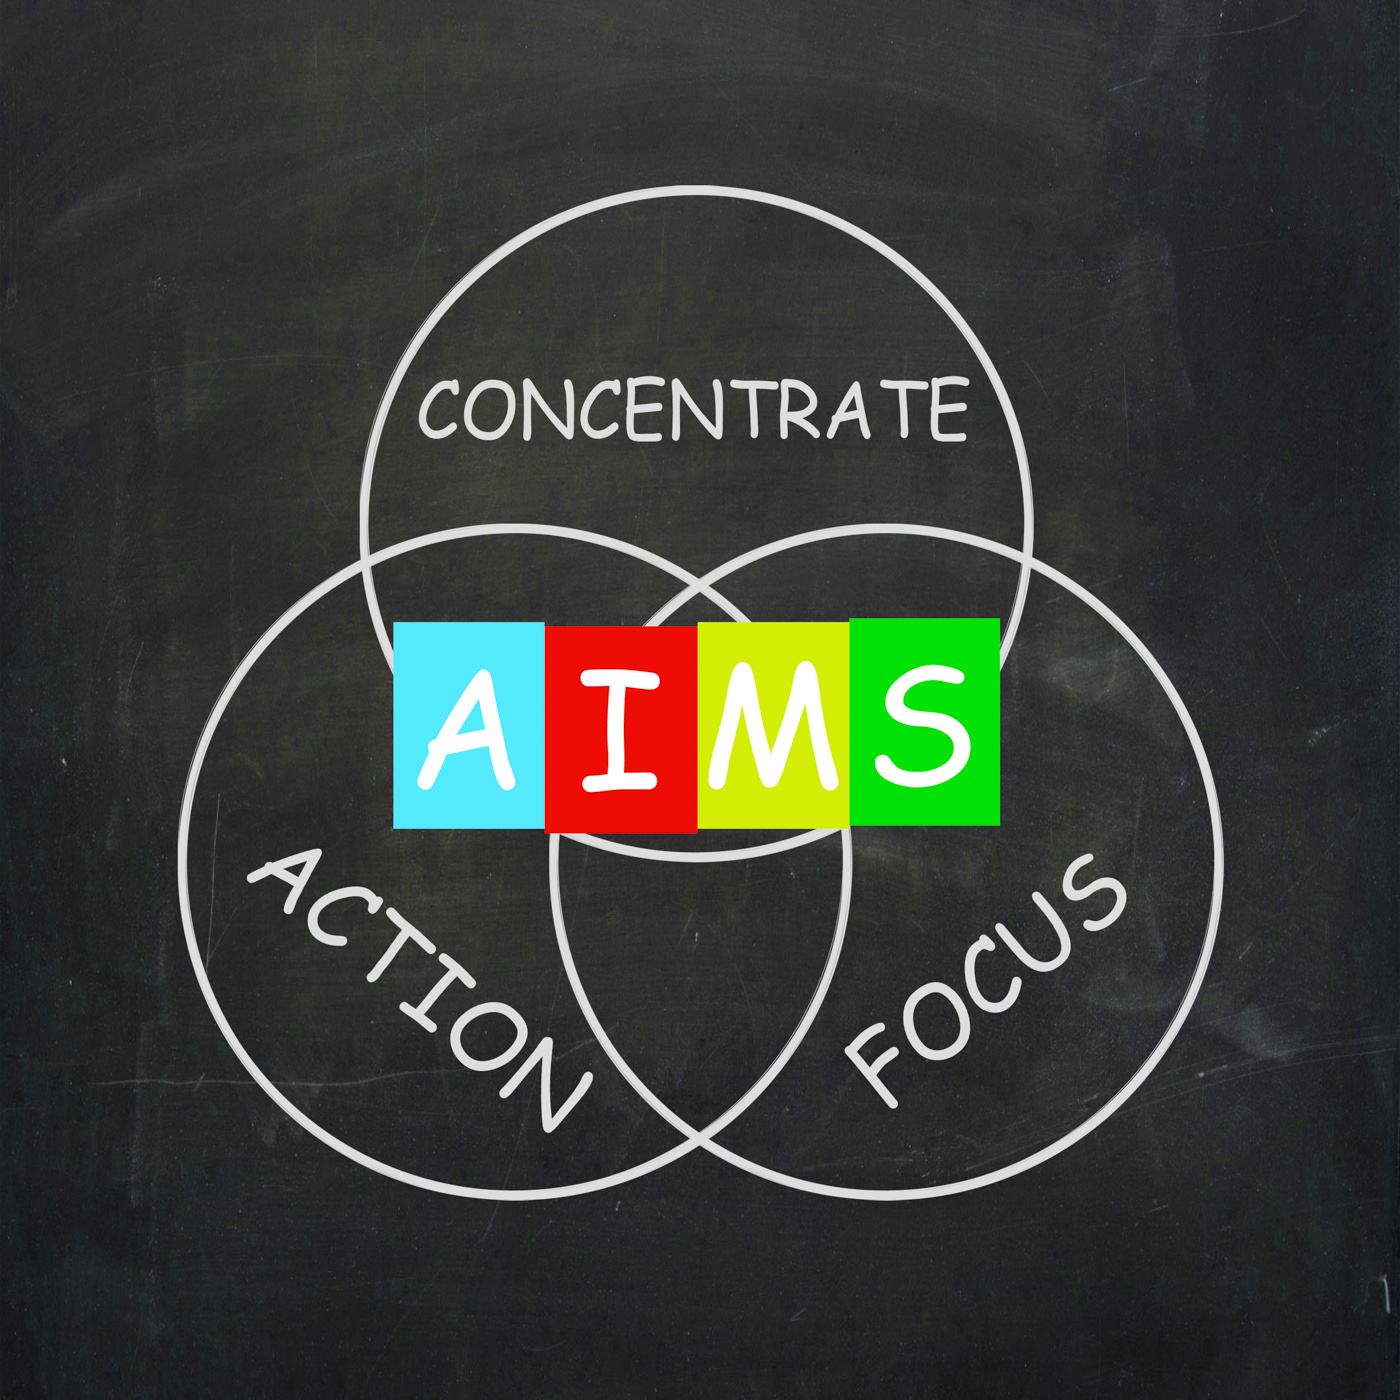 Strategy words include aims focus concentrate and action photo